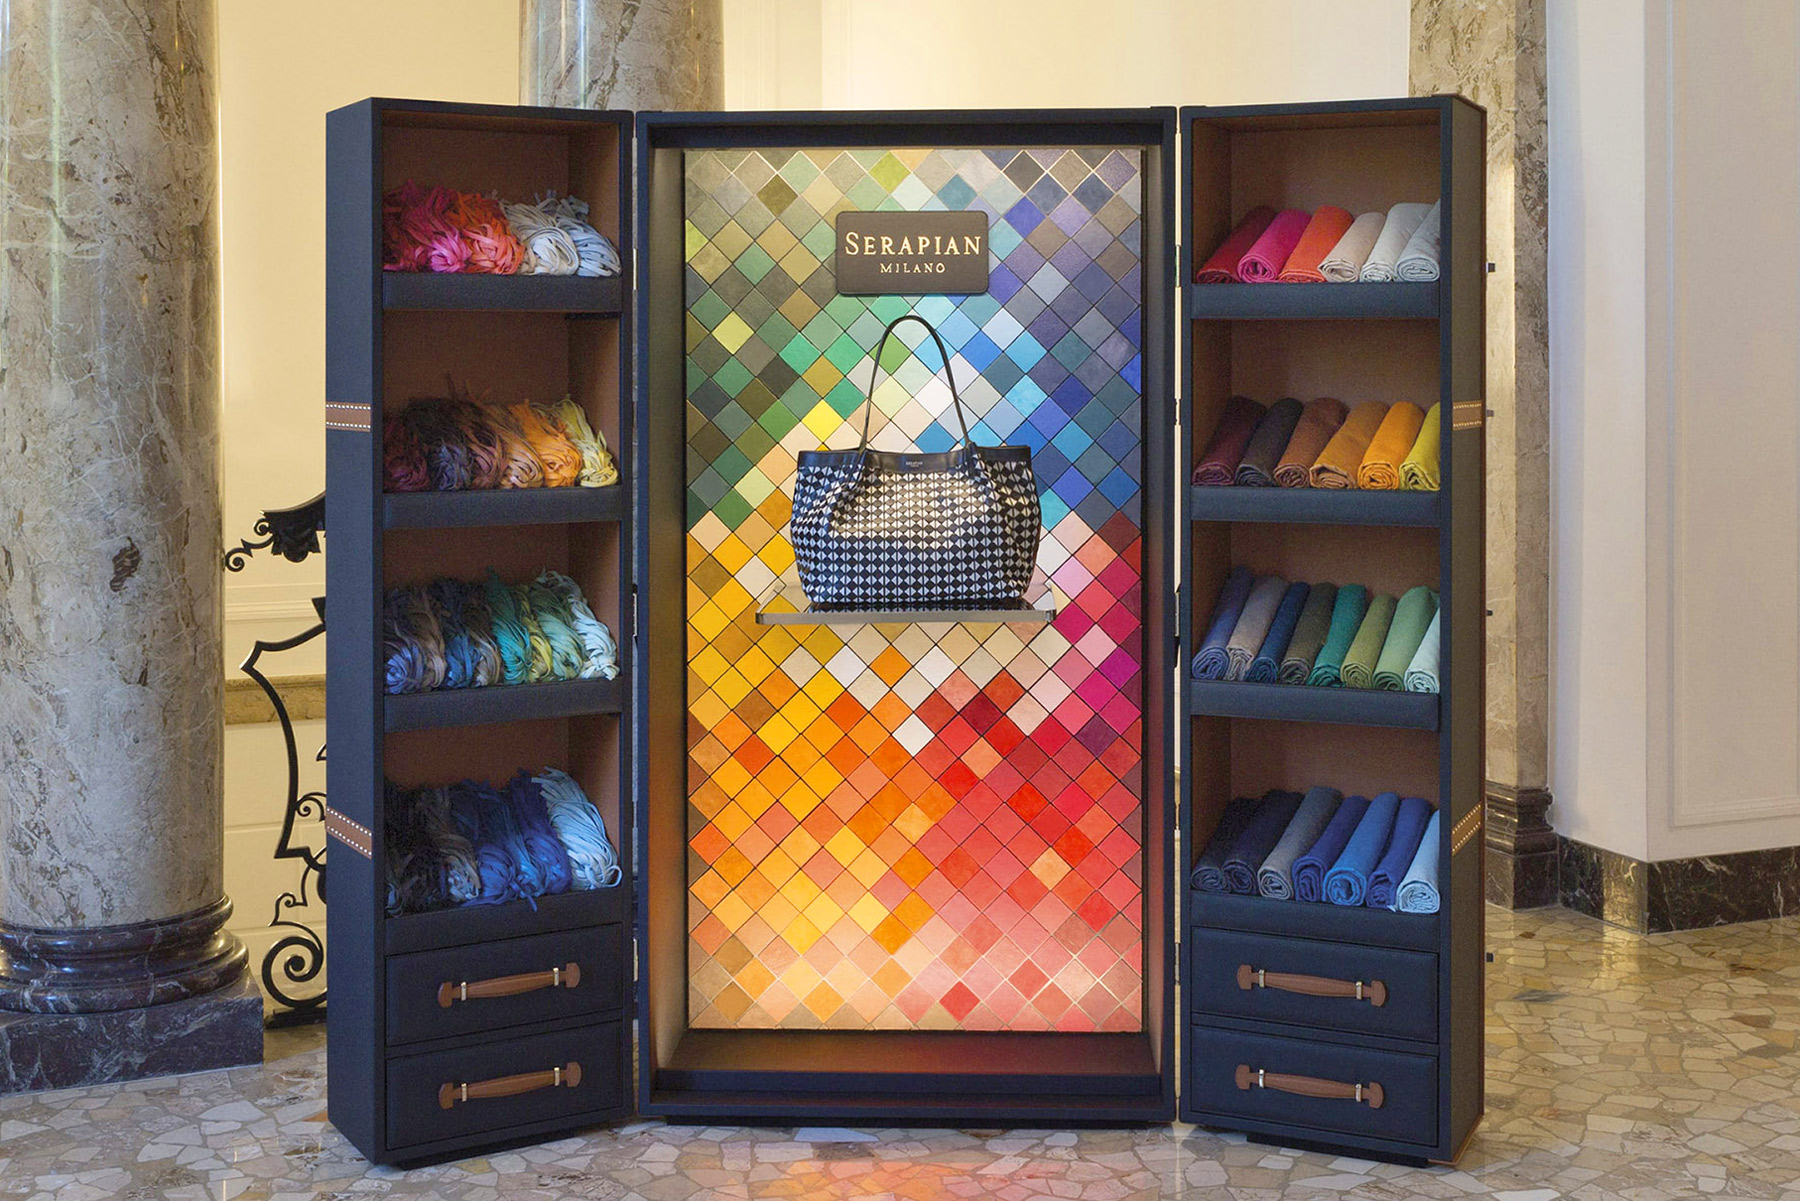 Serapian's Bespoke Service and the New Real for Luxury Fashion